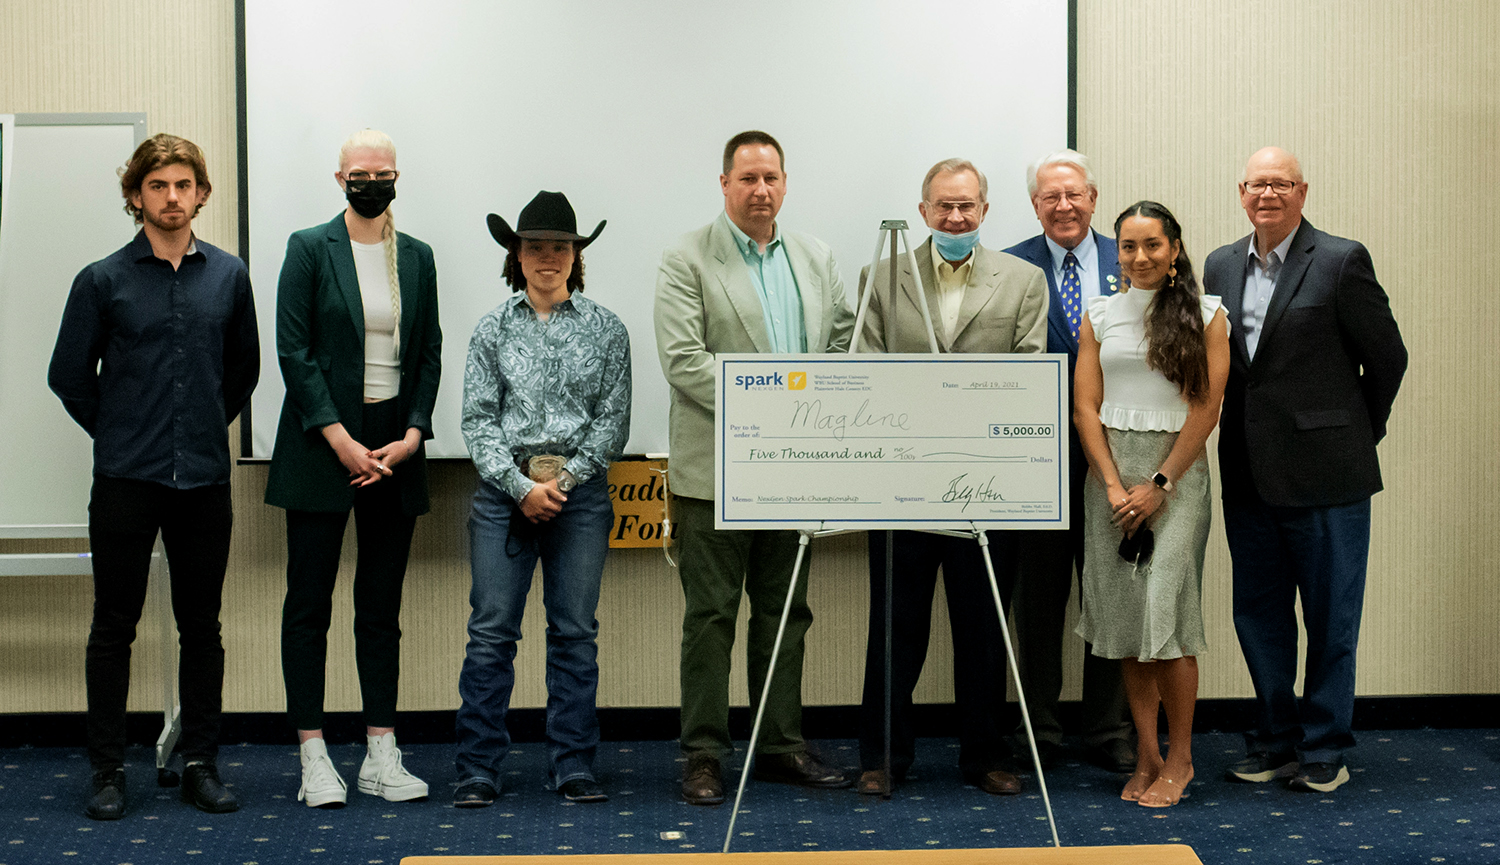 Eight individuals line a stage, standing behind an easel that is holding a fake $5,000 check.